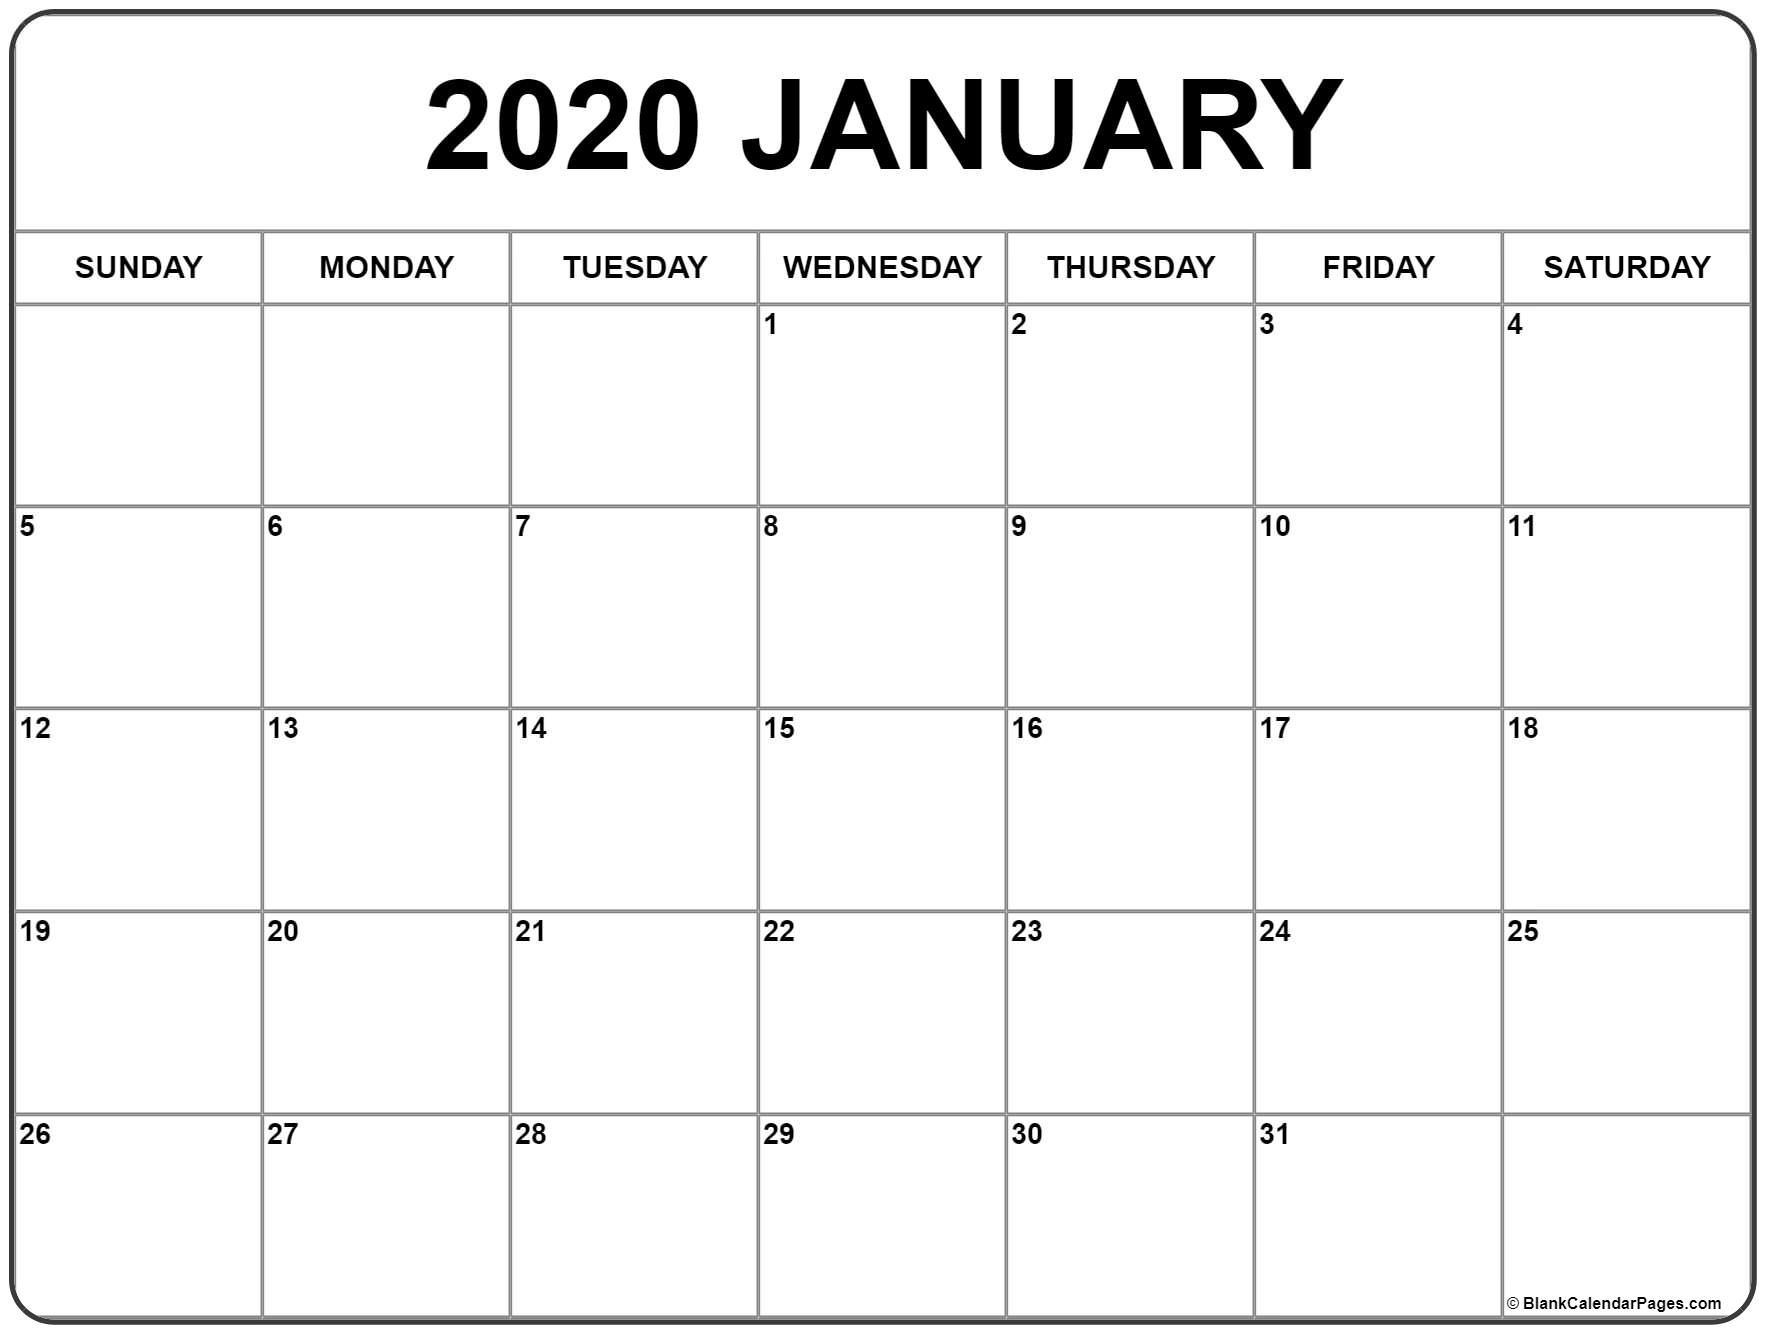 January 2020 Calendar | Free Printable Monthly Calendars  Free Printable Monthly Calendar That Can Be Edited